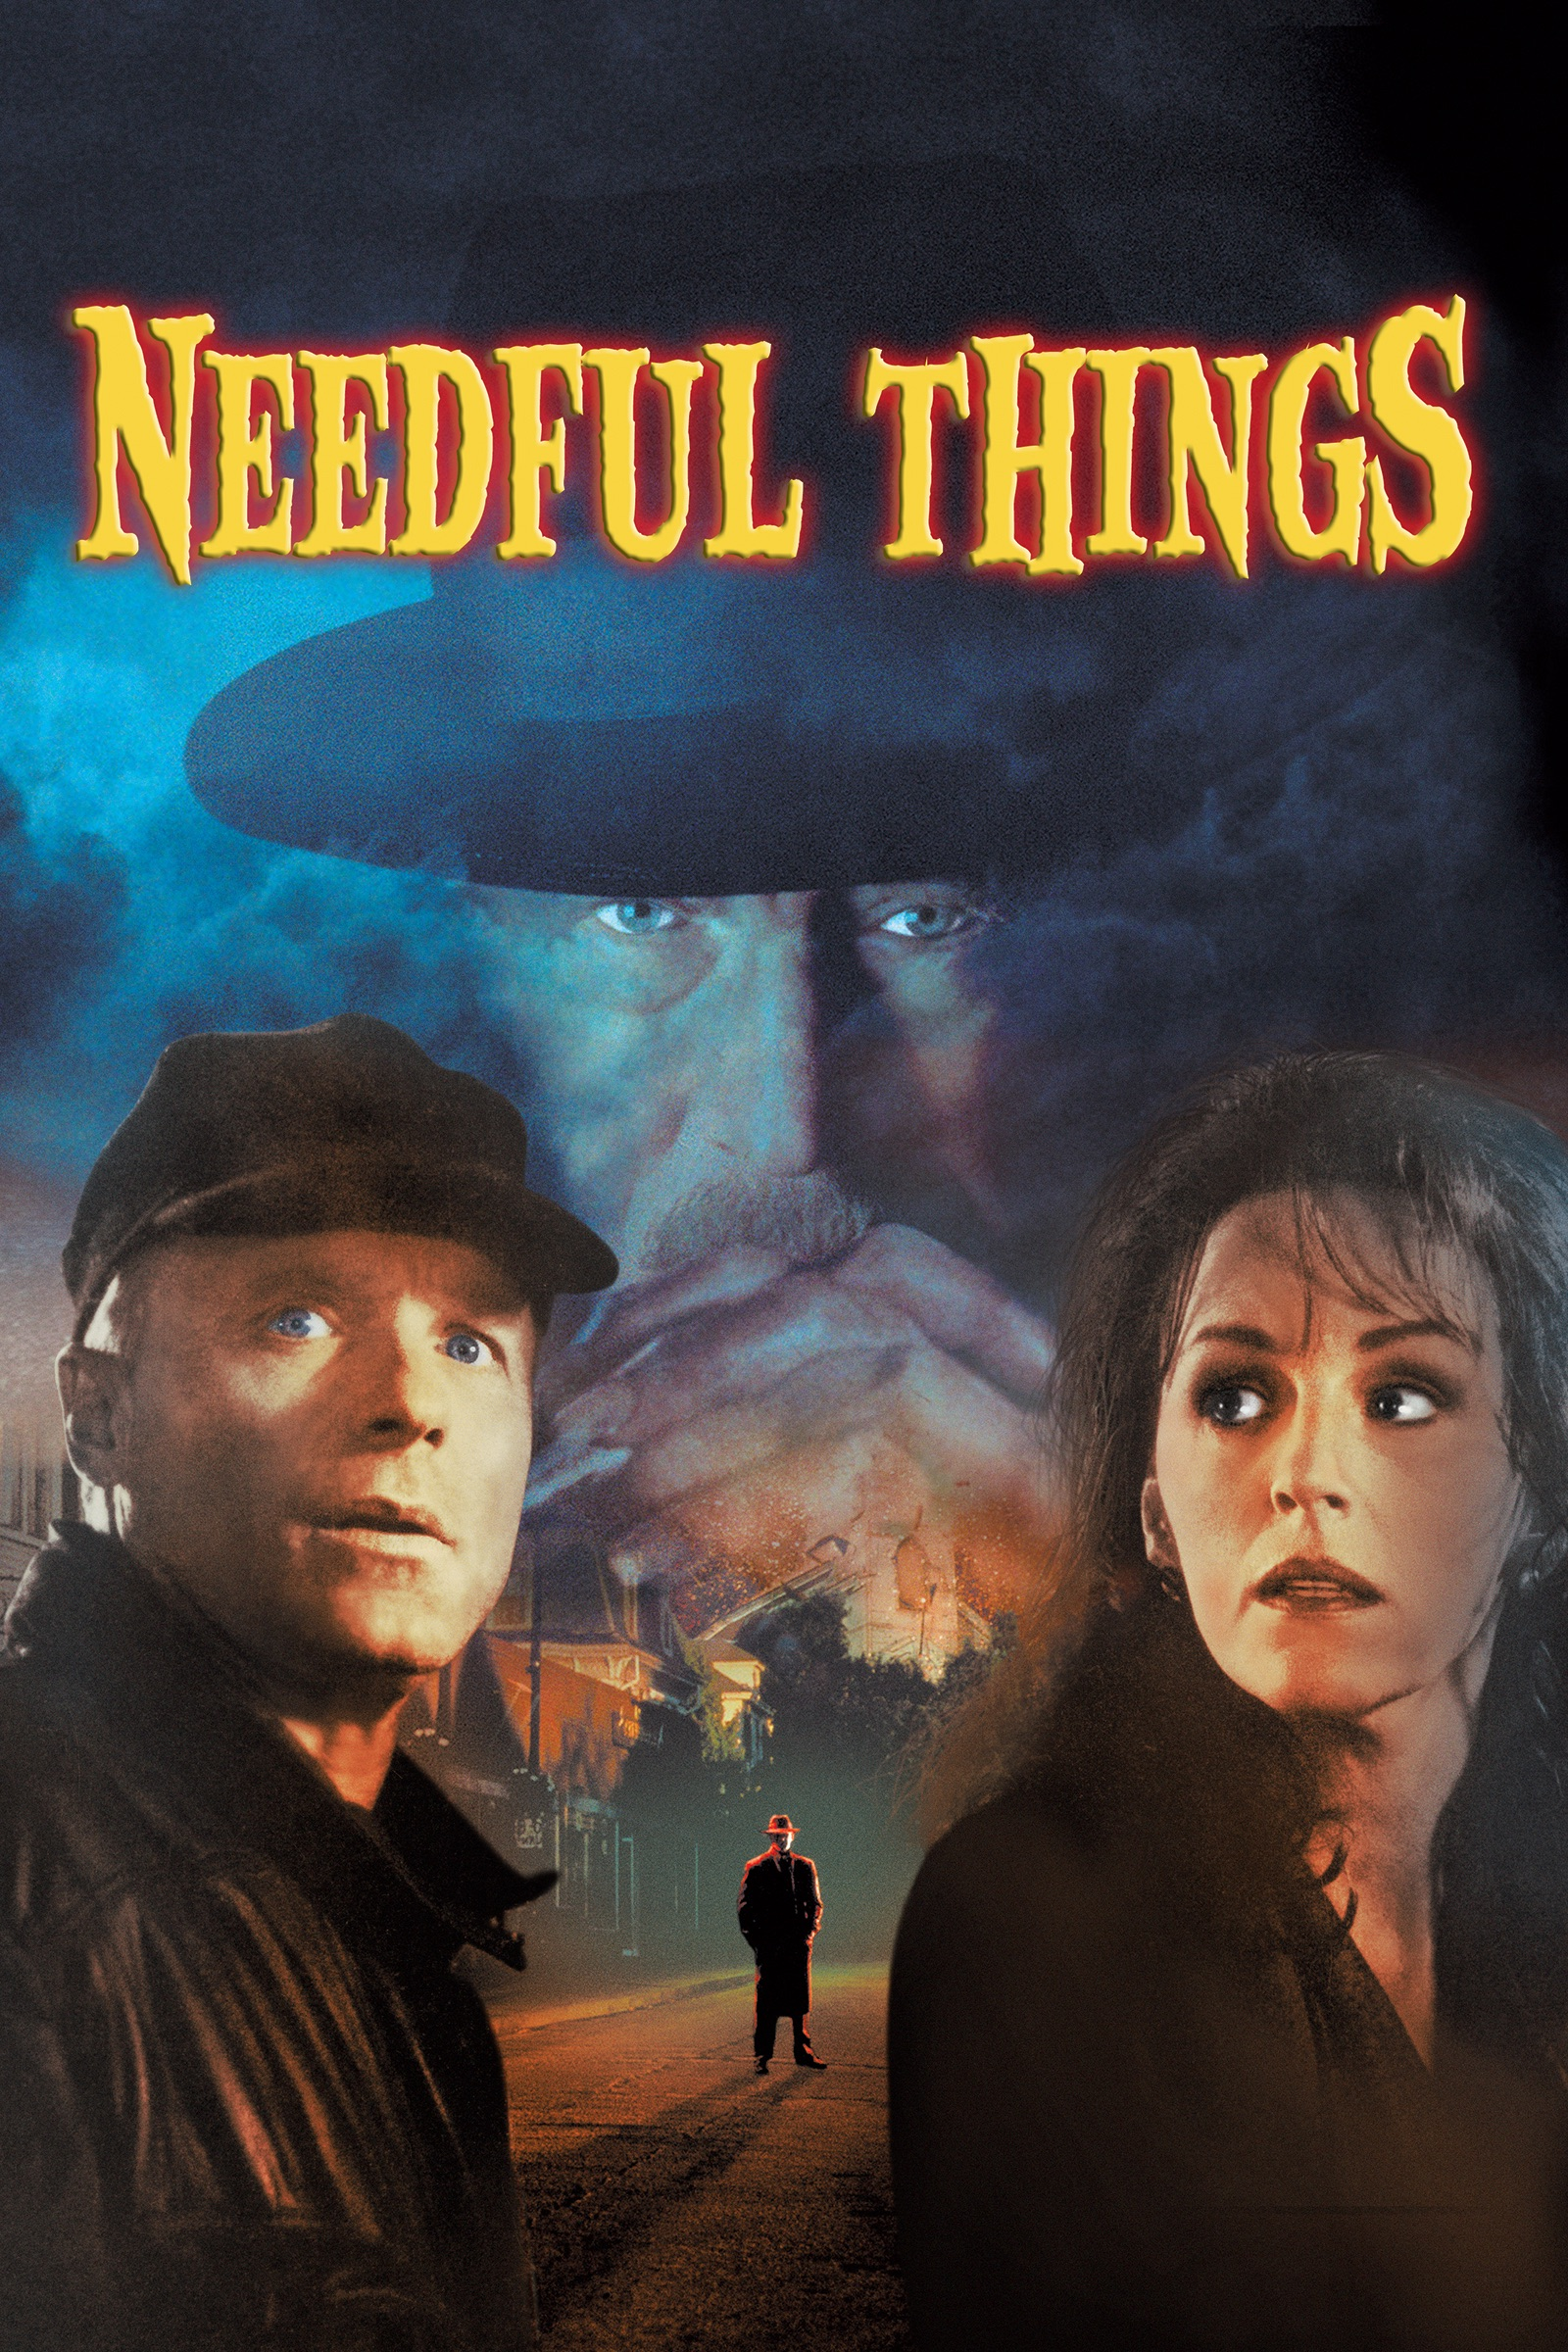 needful things 1993 stephen king movies itunes lot poster salem apple info fantasy horror